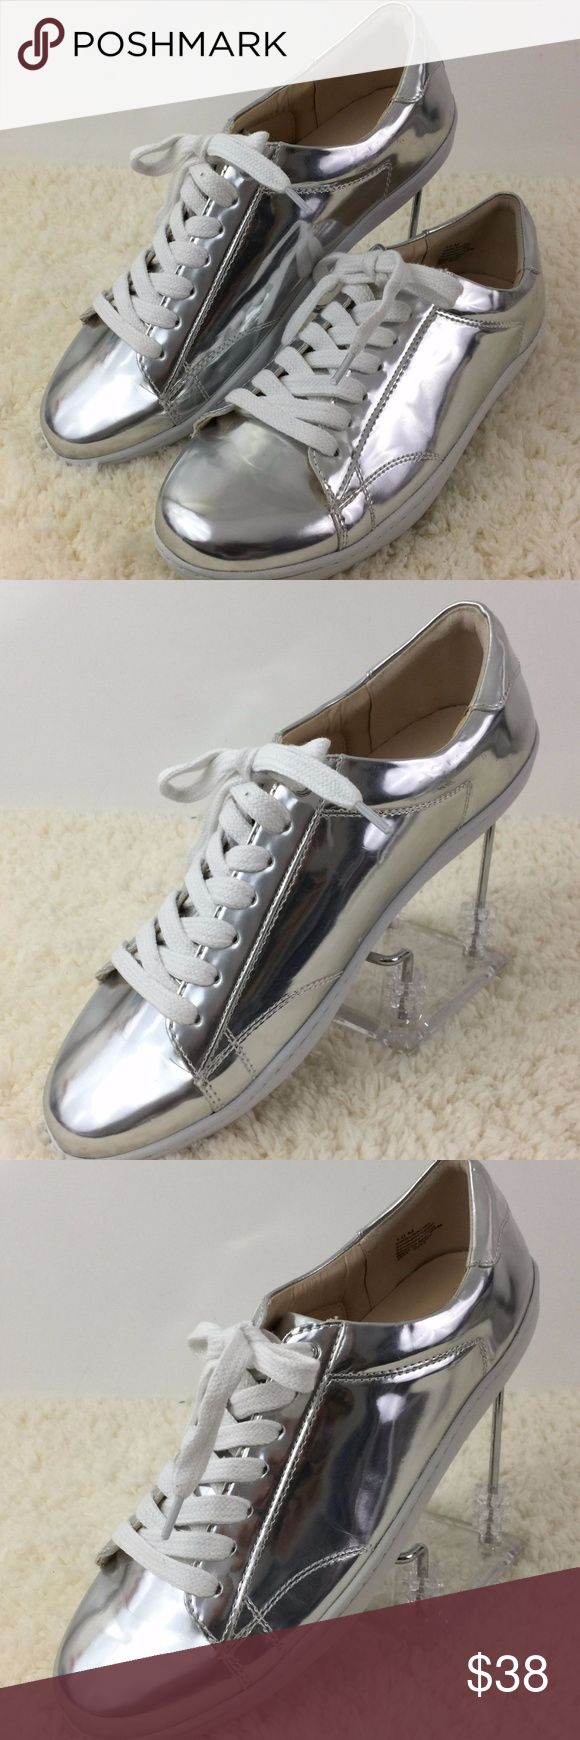 Nine West Lace Up Silver Everyday Sneaker Shoes Nine West Ladies Flat Lace Up Casual Sneaker Shoes Size 10 M Silver White  Style: Casual Size Type: Regular Model: hearmeout metallic US shoe size: 10M Color: Silver White Nine West Shoes Sneakers